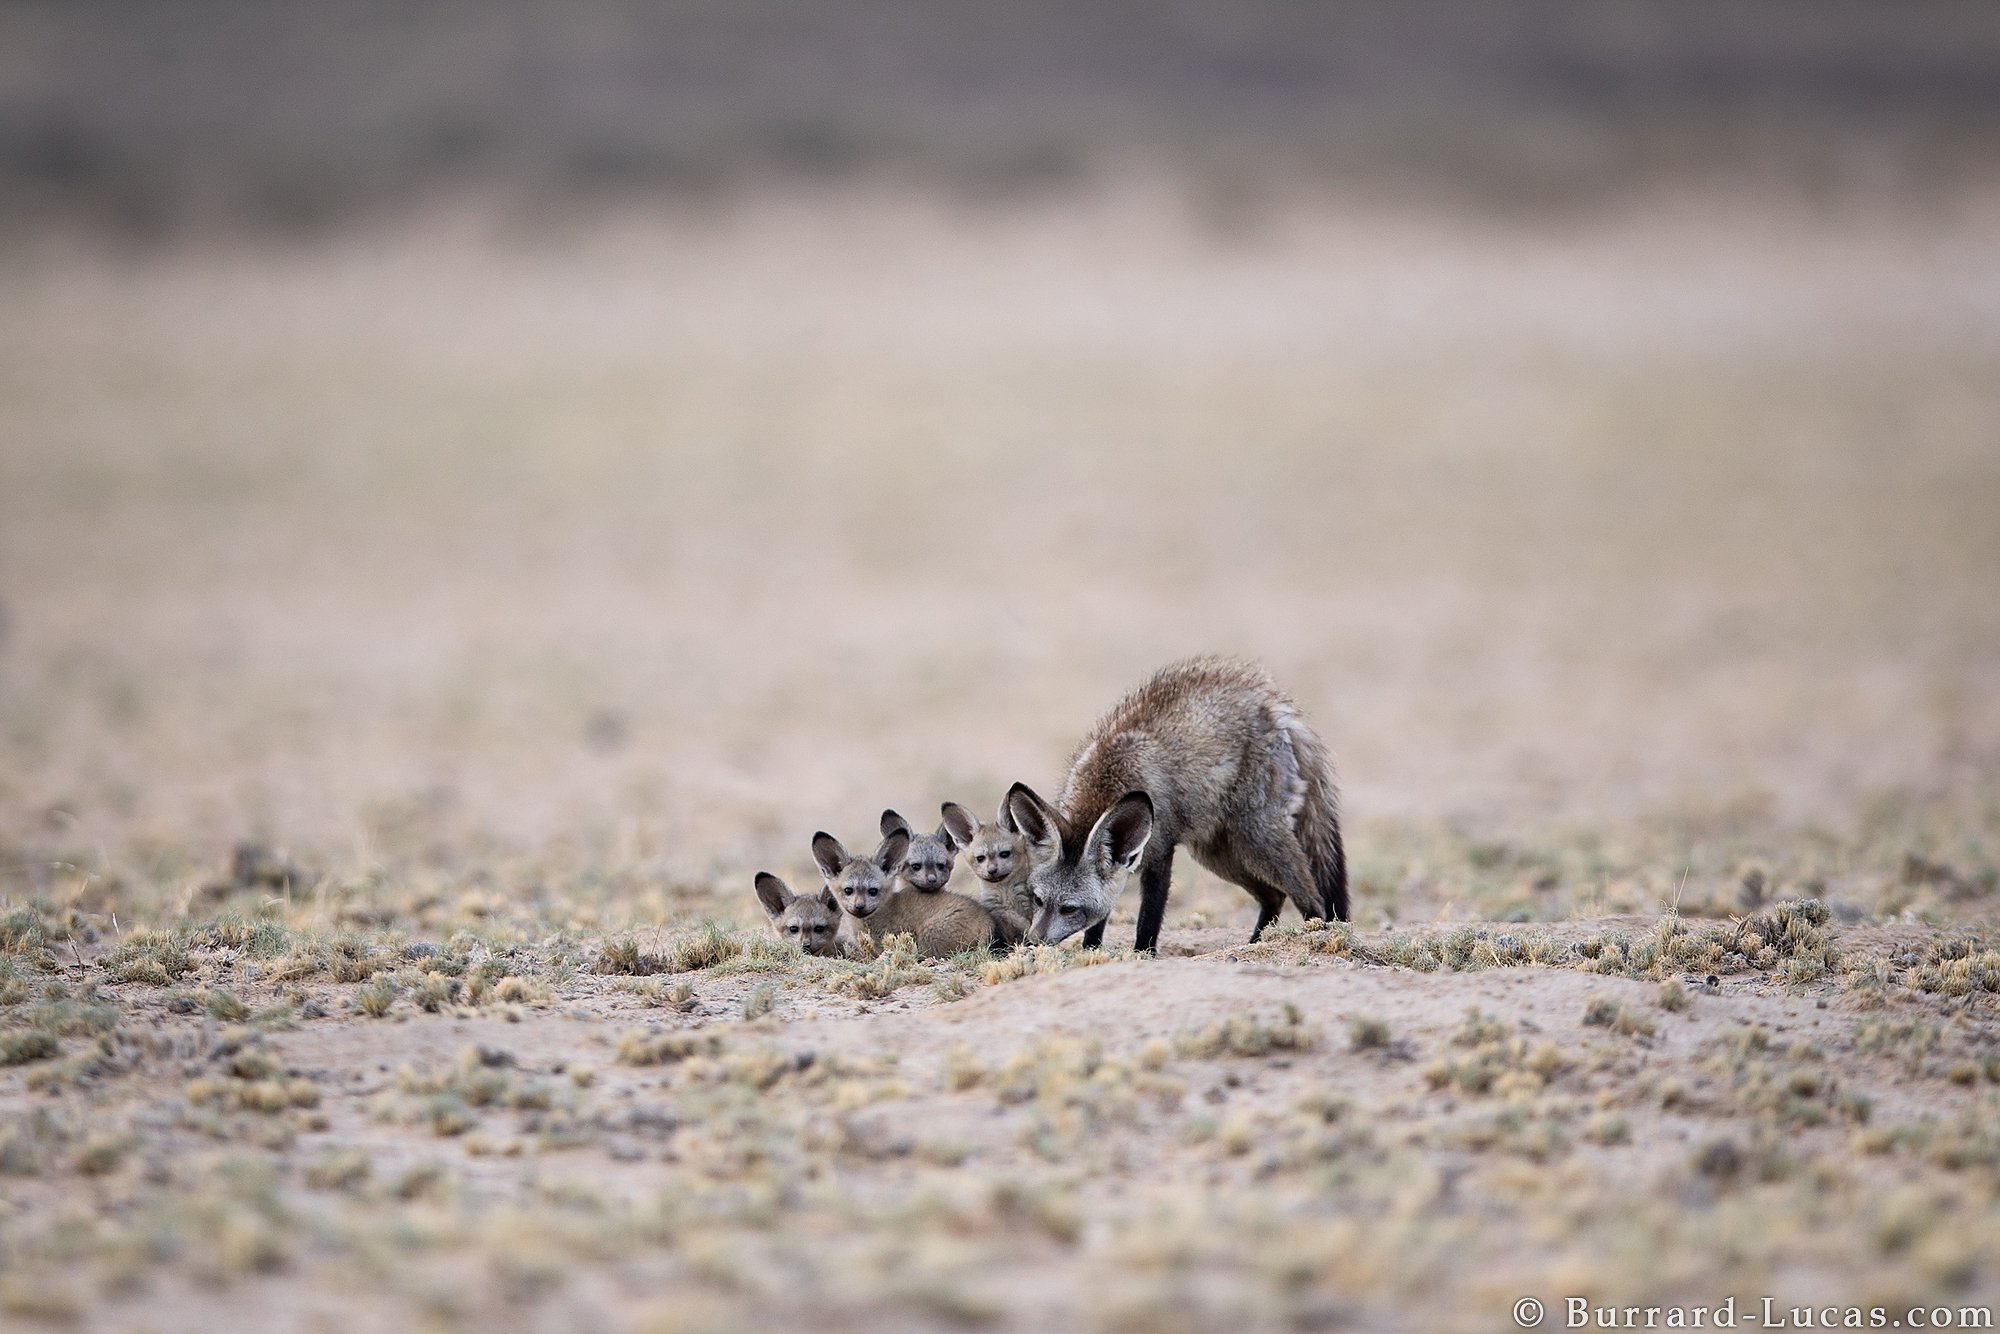 Bat-eared fox cubs! https://t.co/vfAjsNLX4k